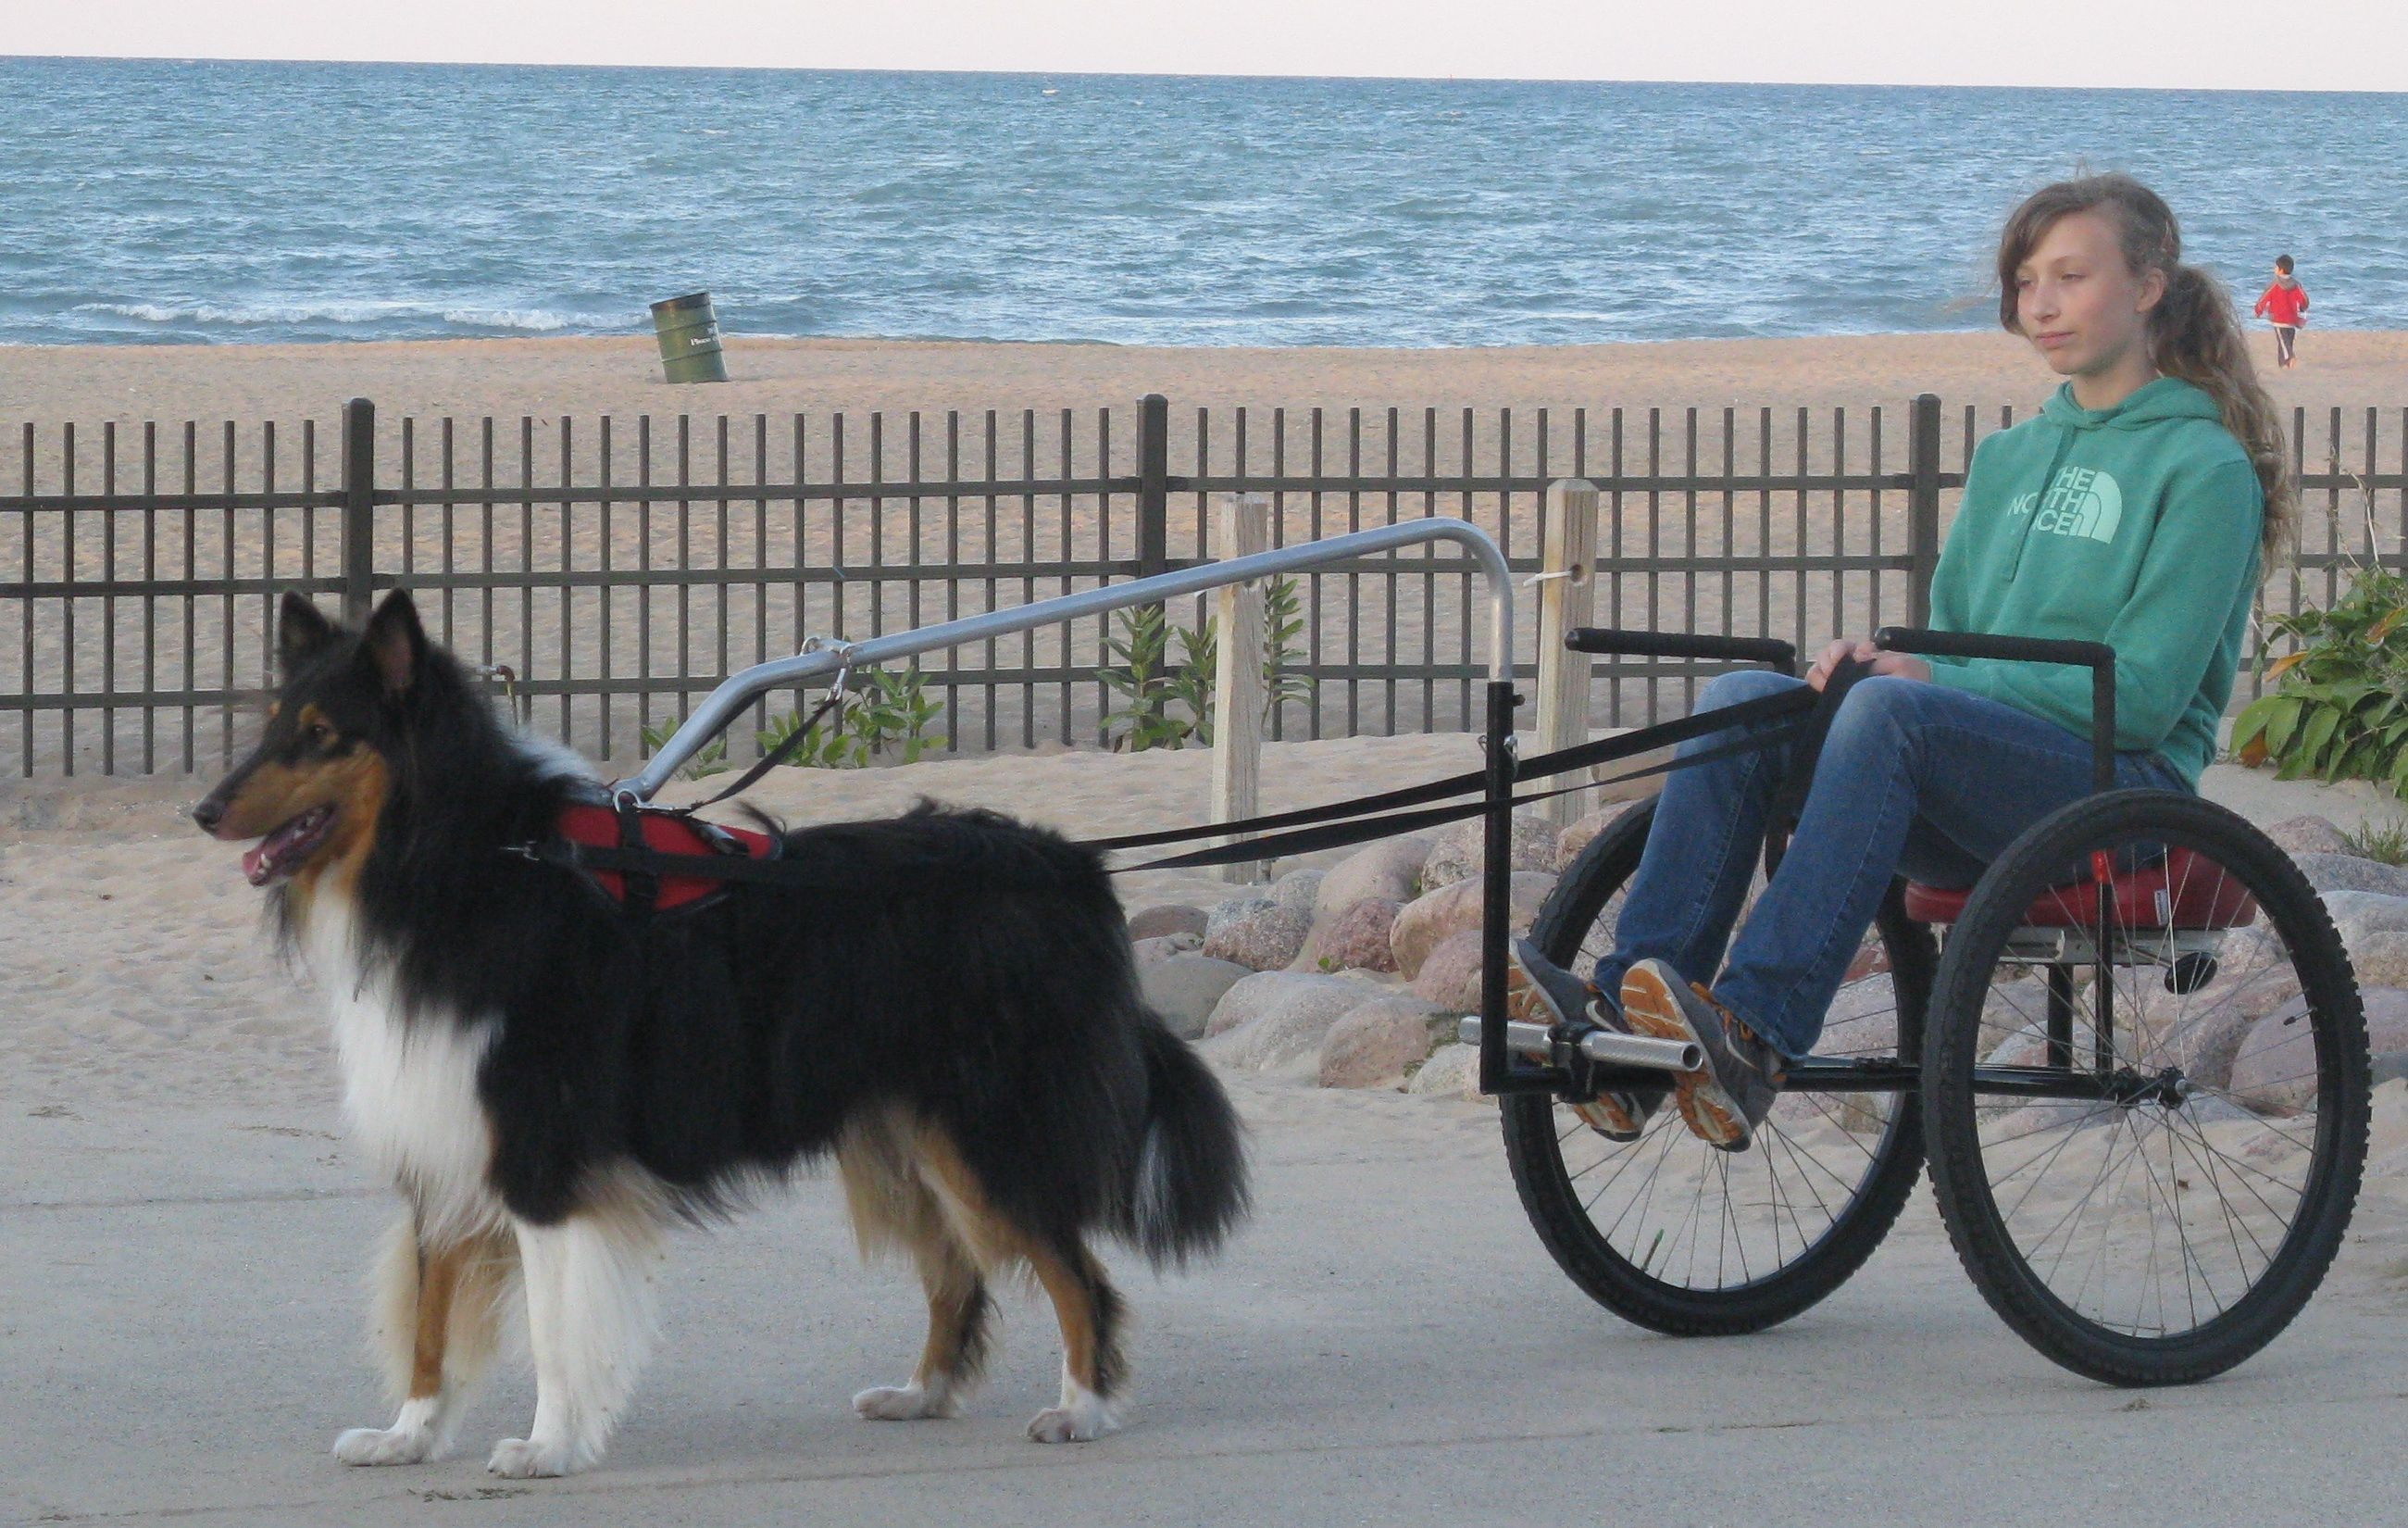 Dog Carting By Beach Jpg 2601 1650 Dogs Cool Pets Dog Sledding